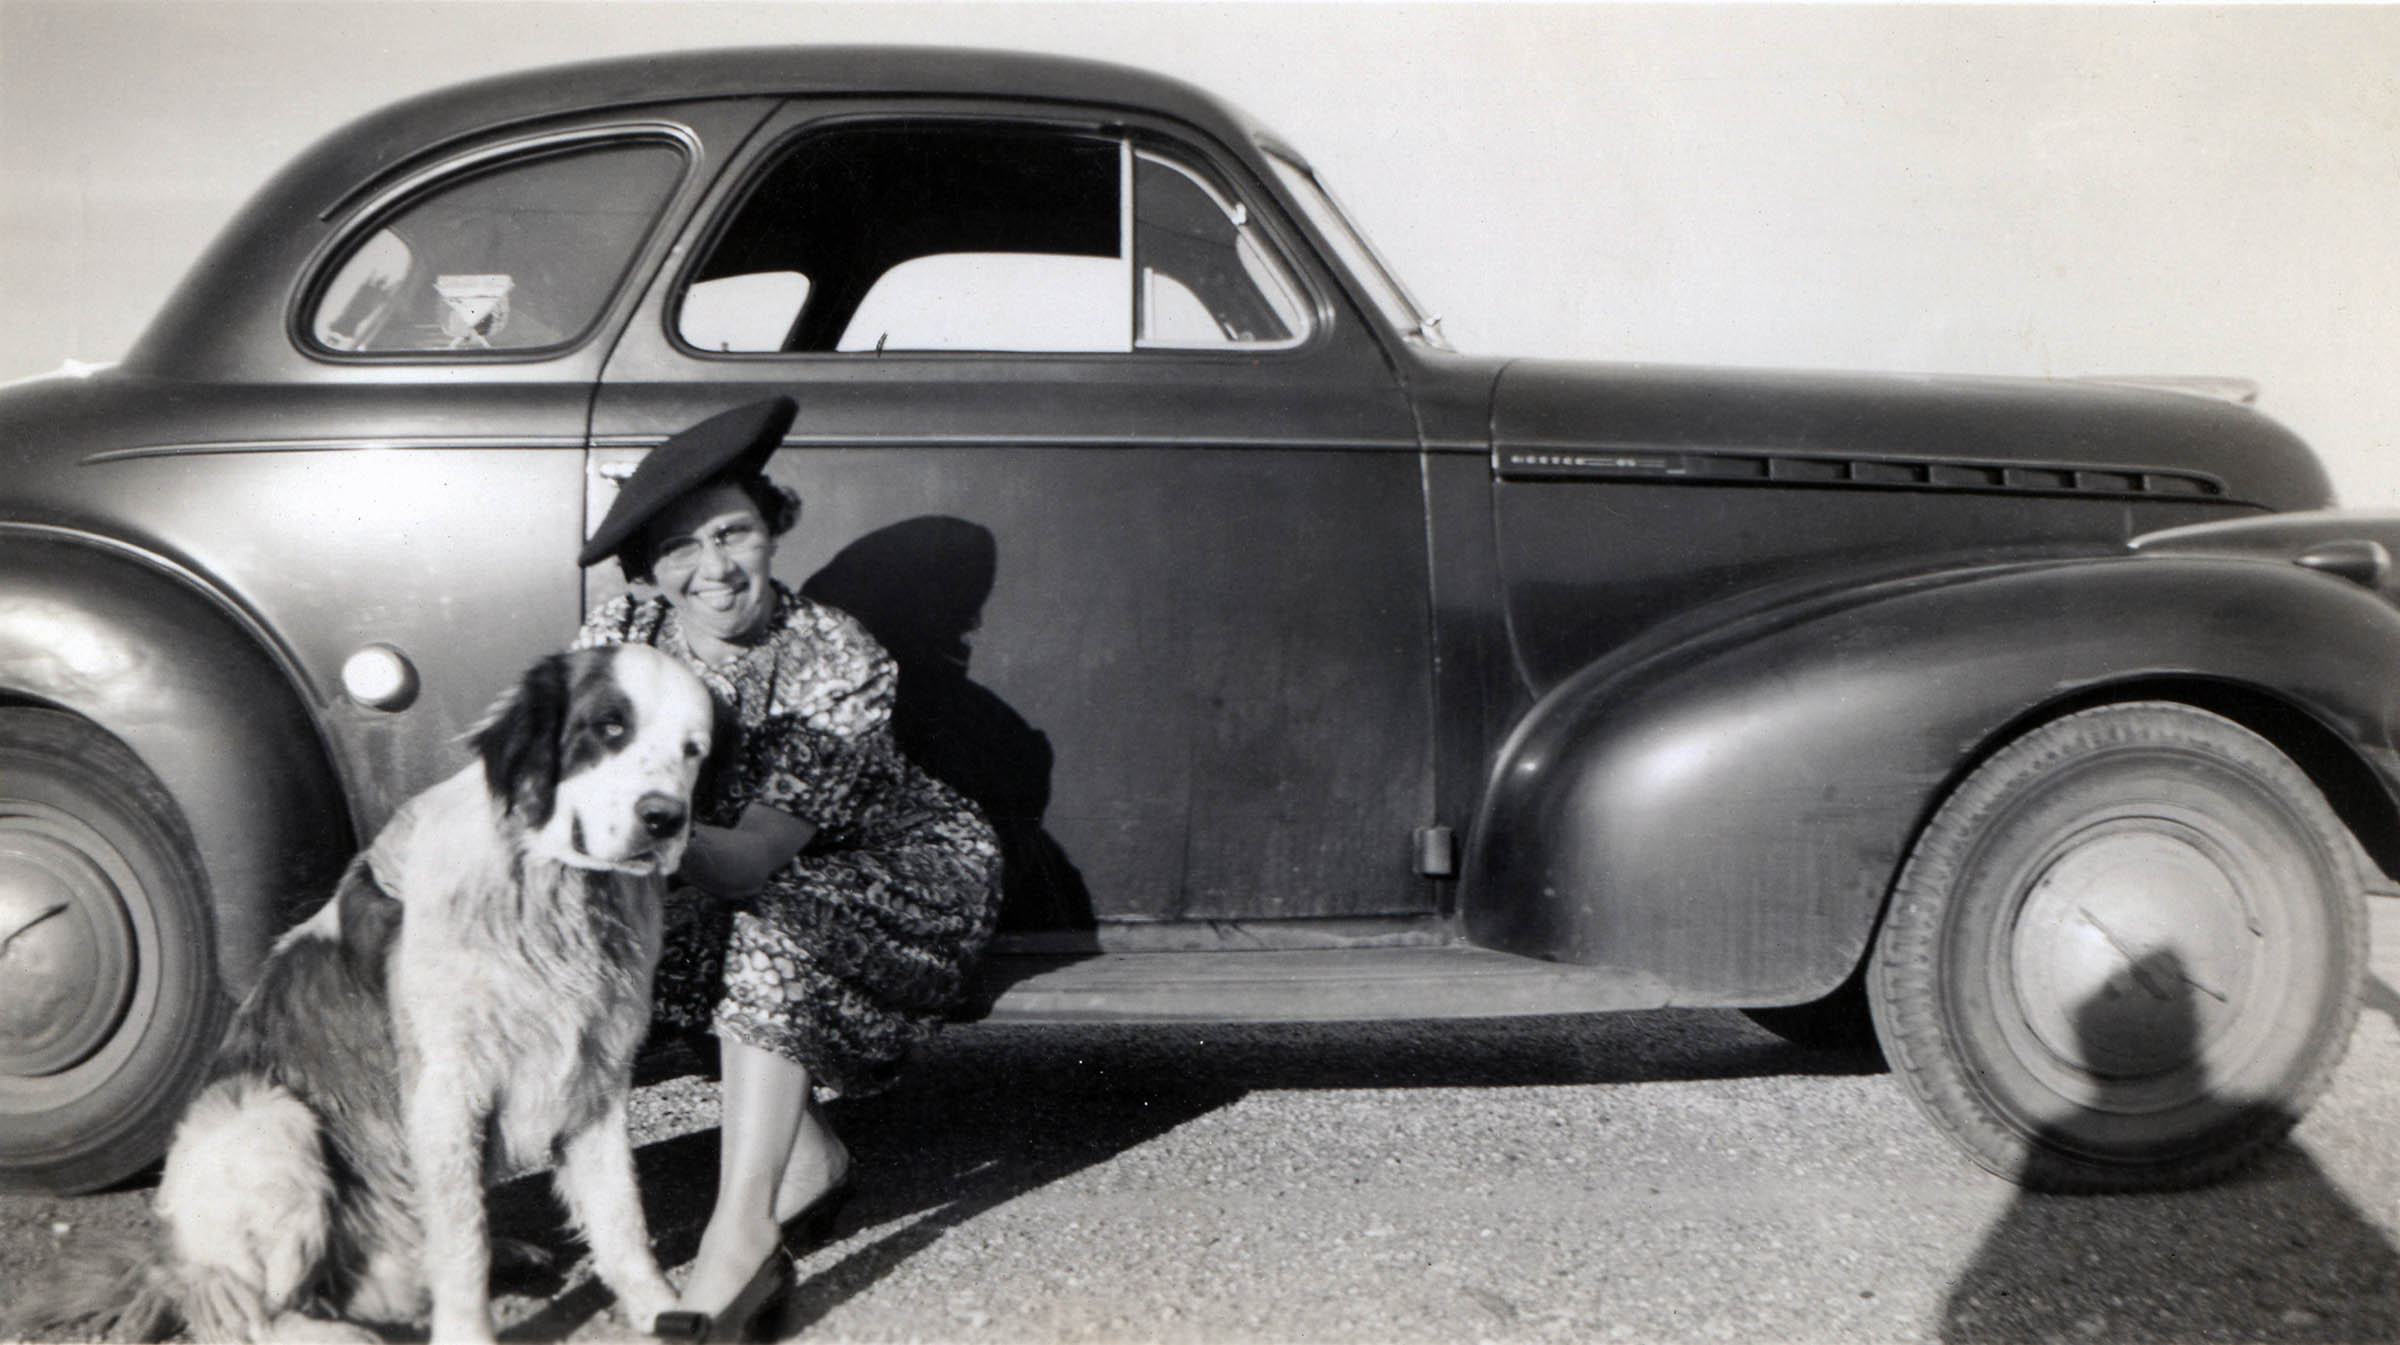 Portrait of a woman sitting on an automobile with her dog, around 1940-1950. Photographer unknown. Courtesy DIA.